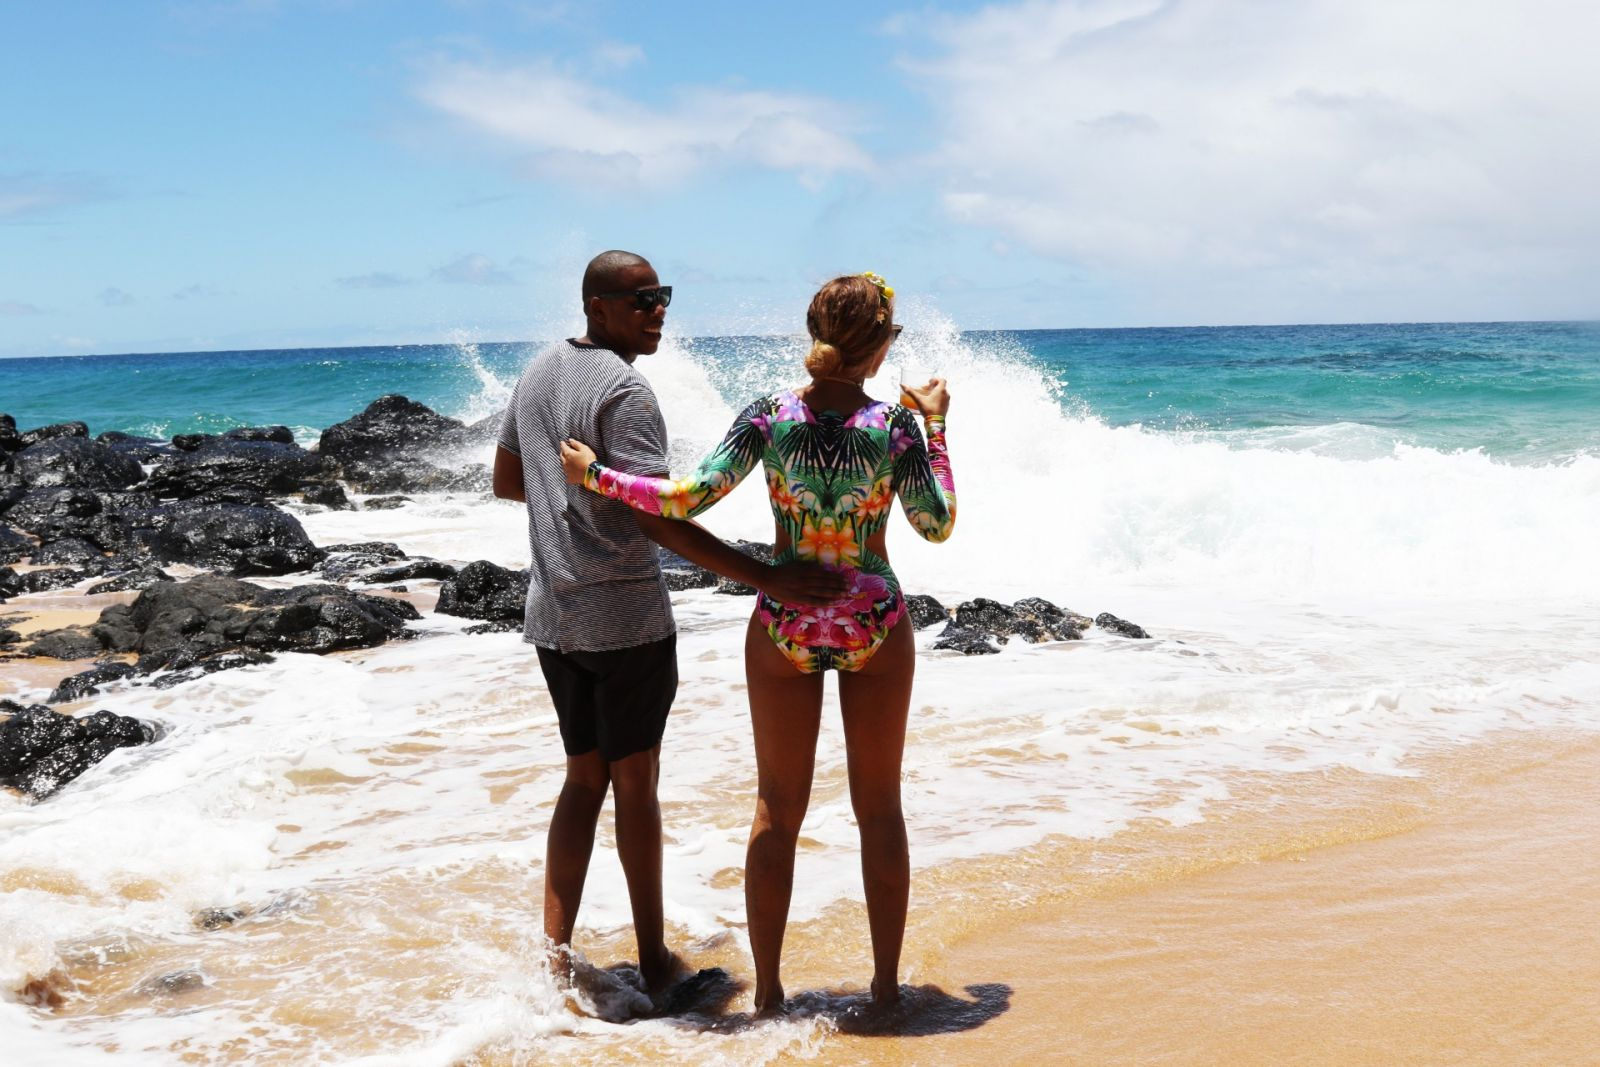 Beyonce and blue ivy on beach